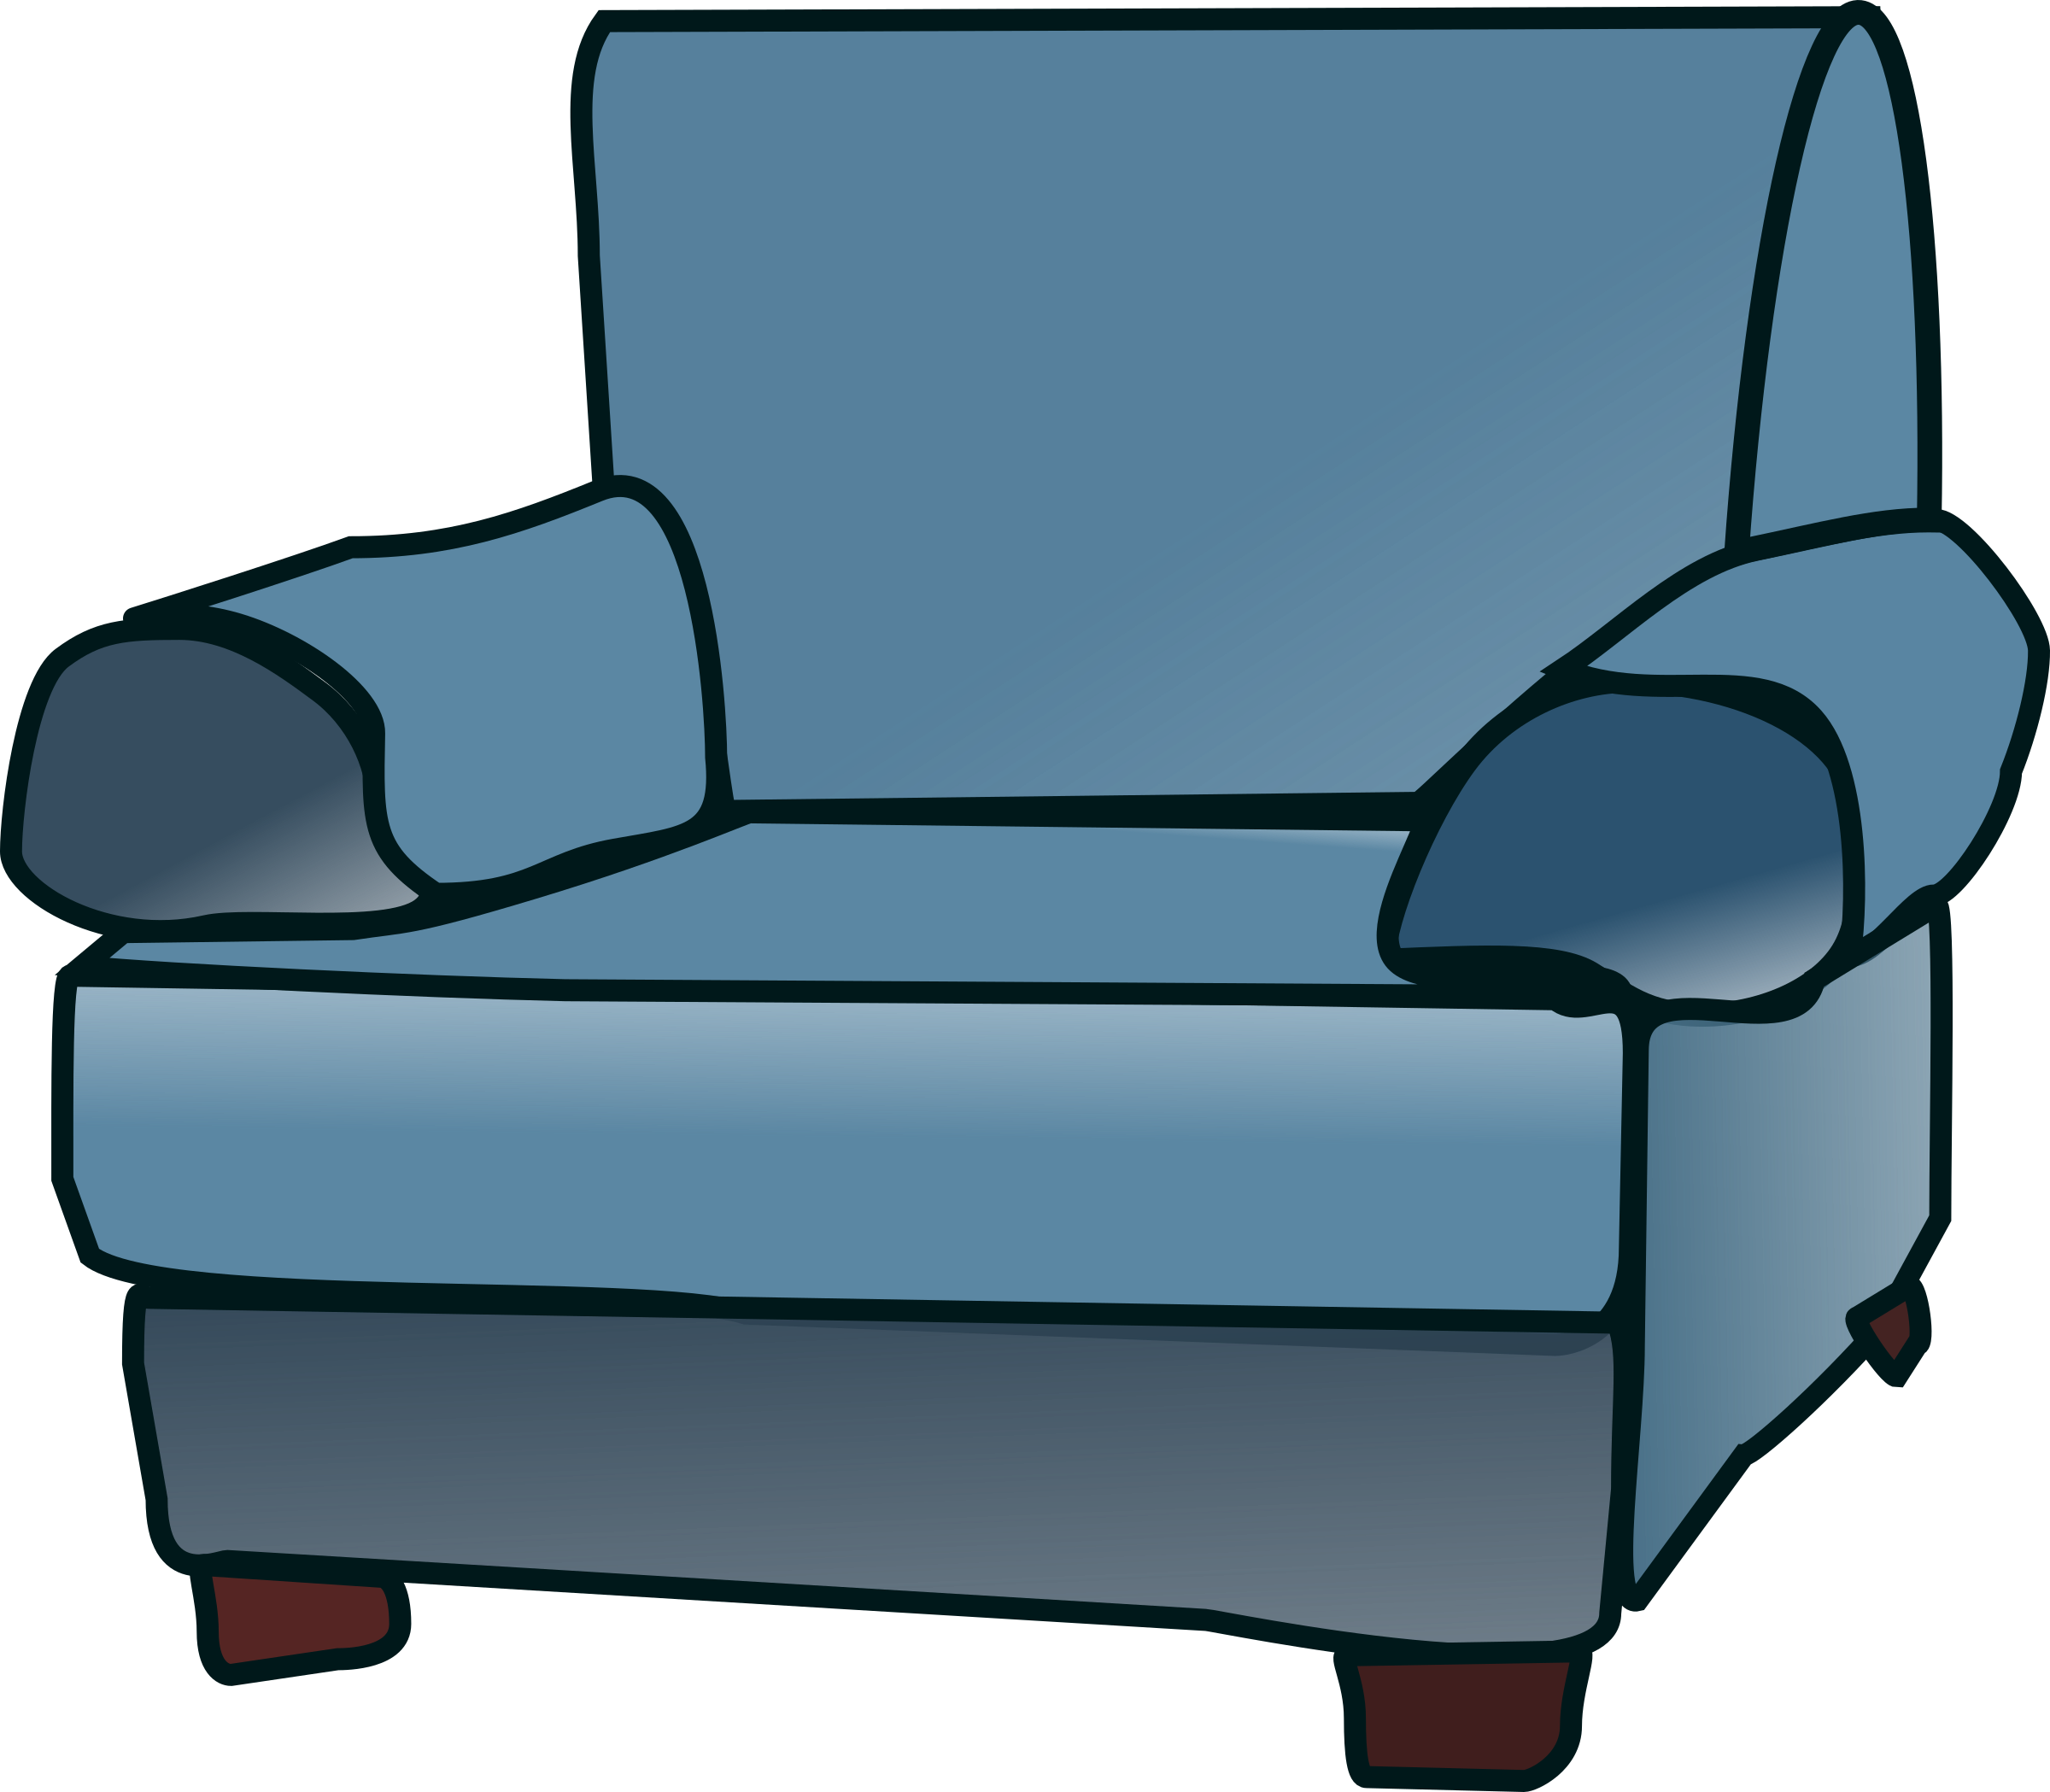 Pleasing Couch Clipart Animated Couch Animated Transparent Free For Bralicious Painted Fabric Chair Ideas Braliciousco